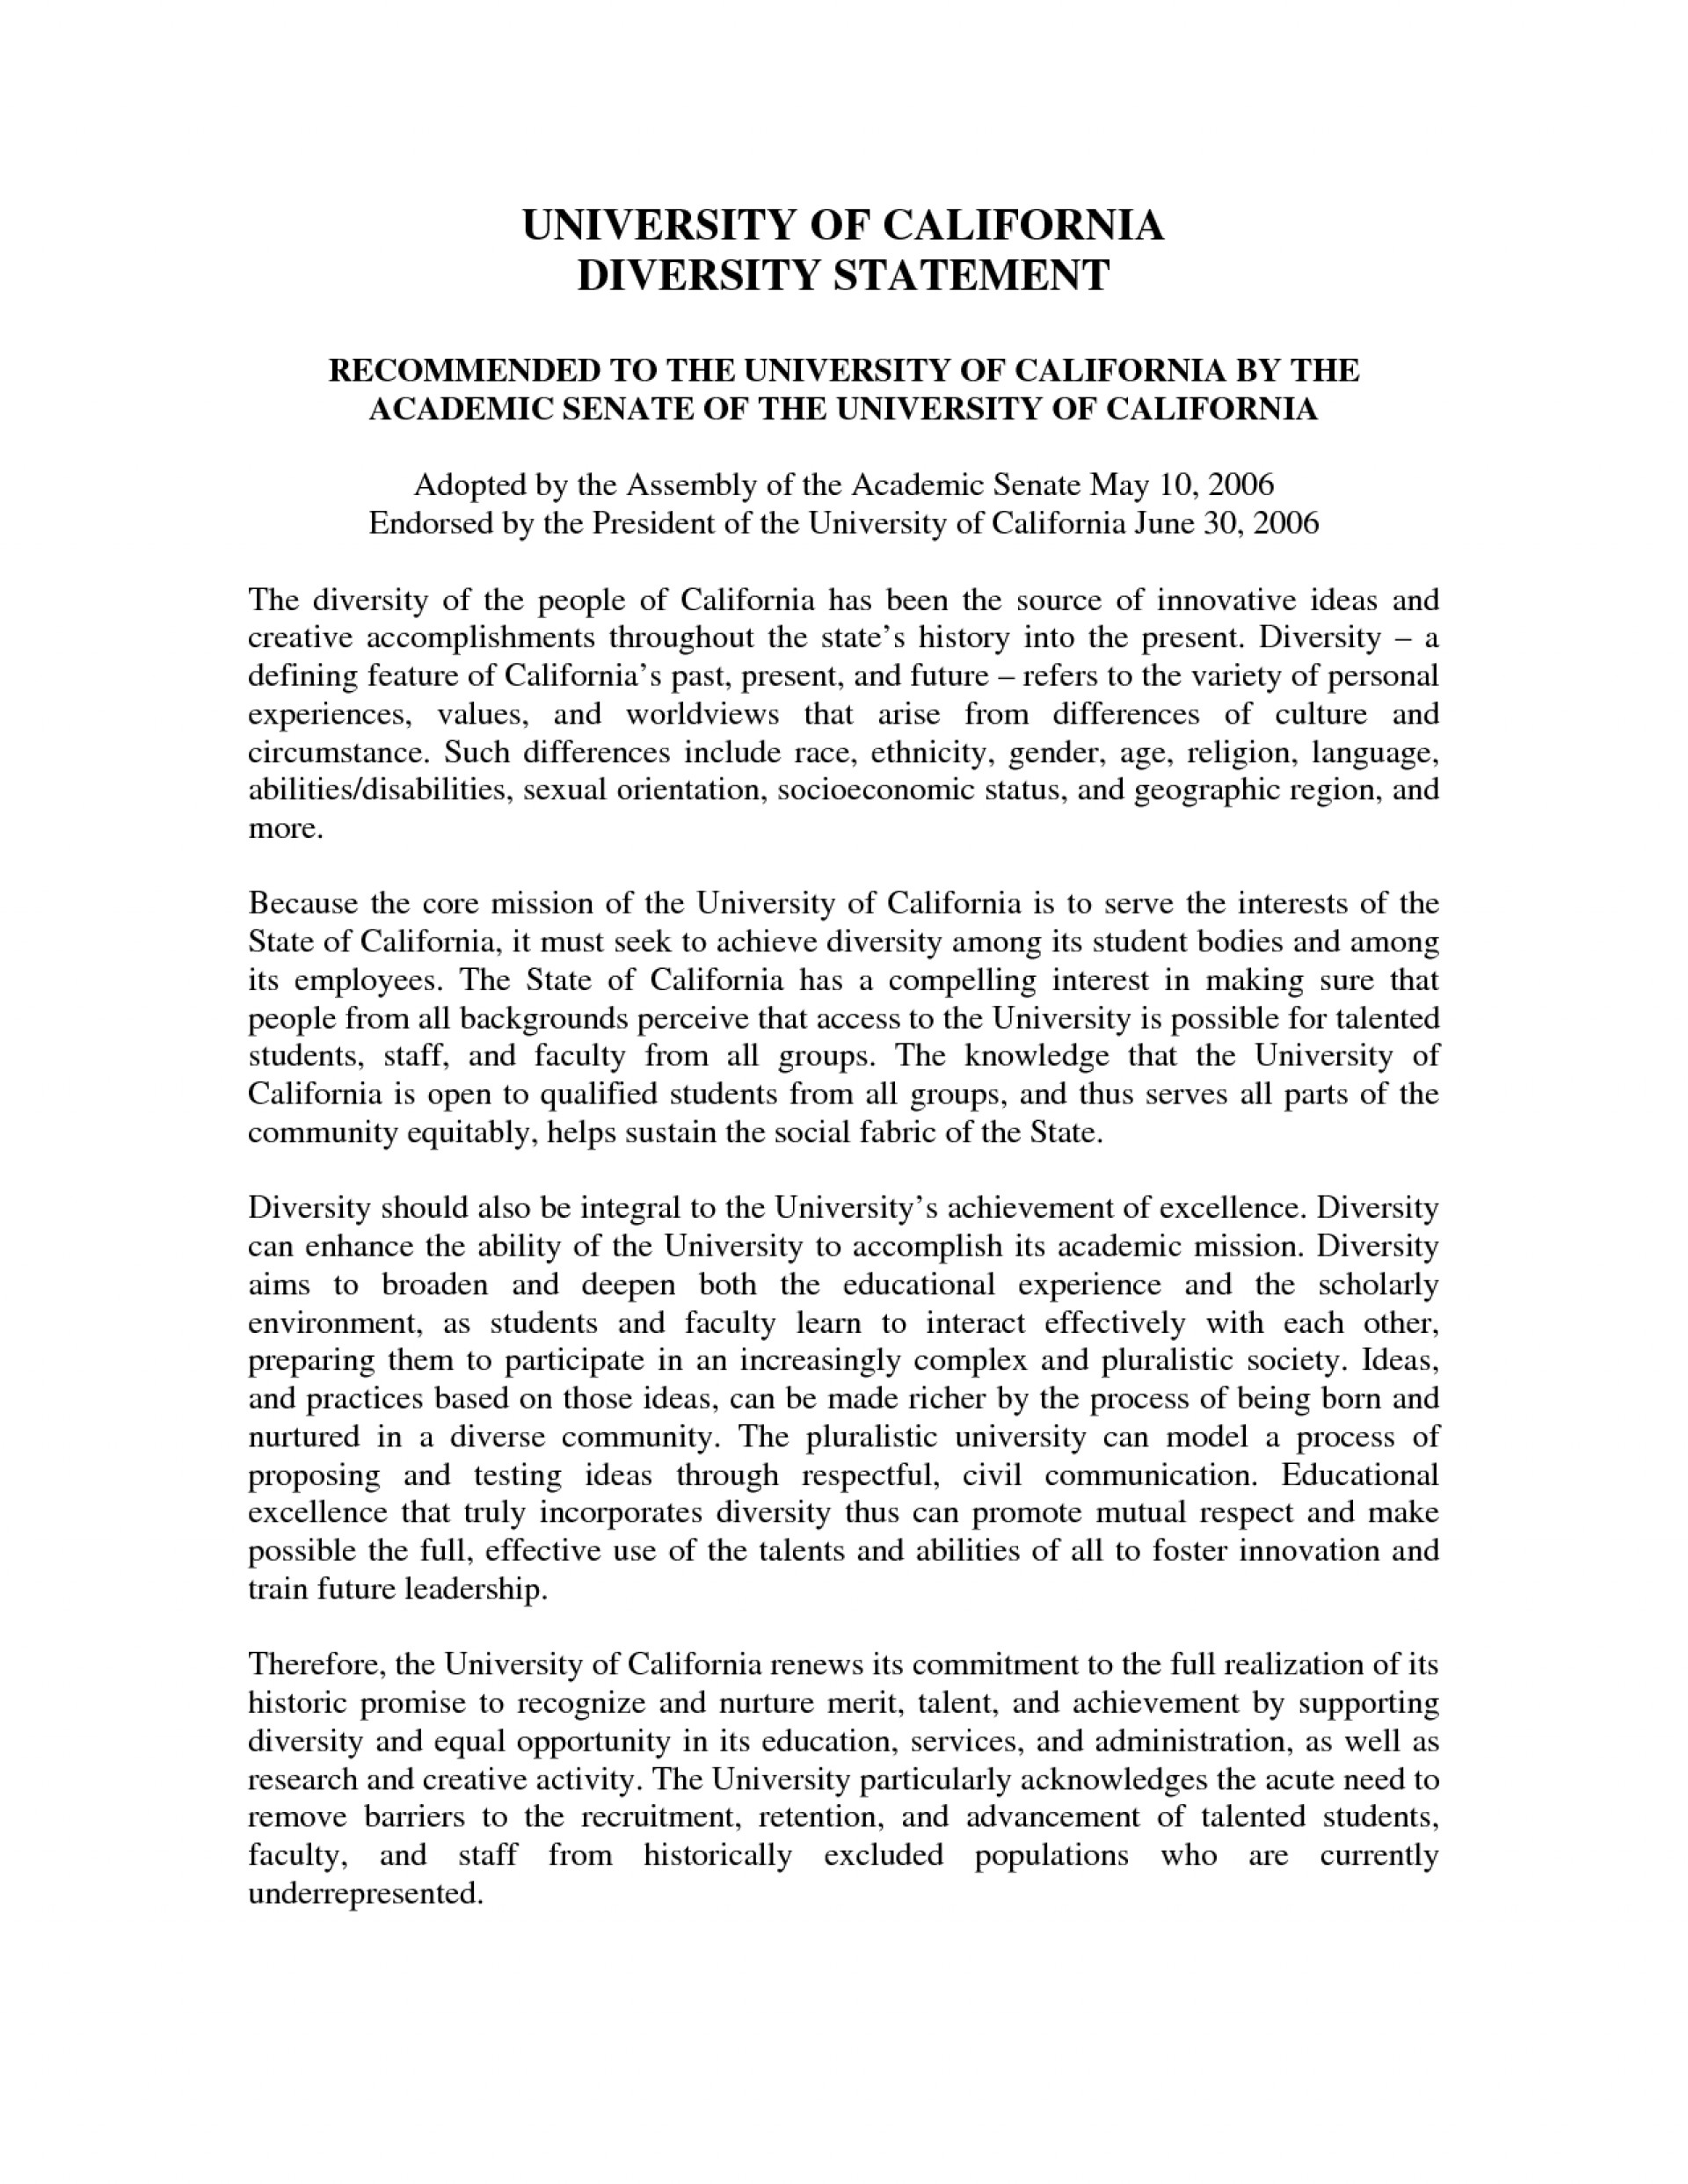 Diversity essay for college